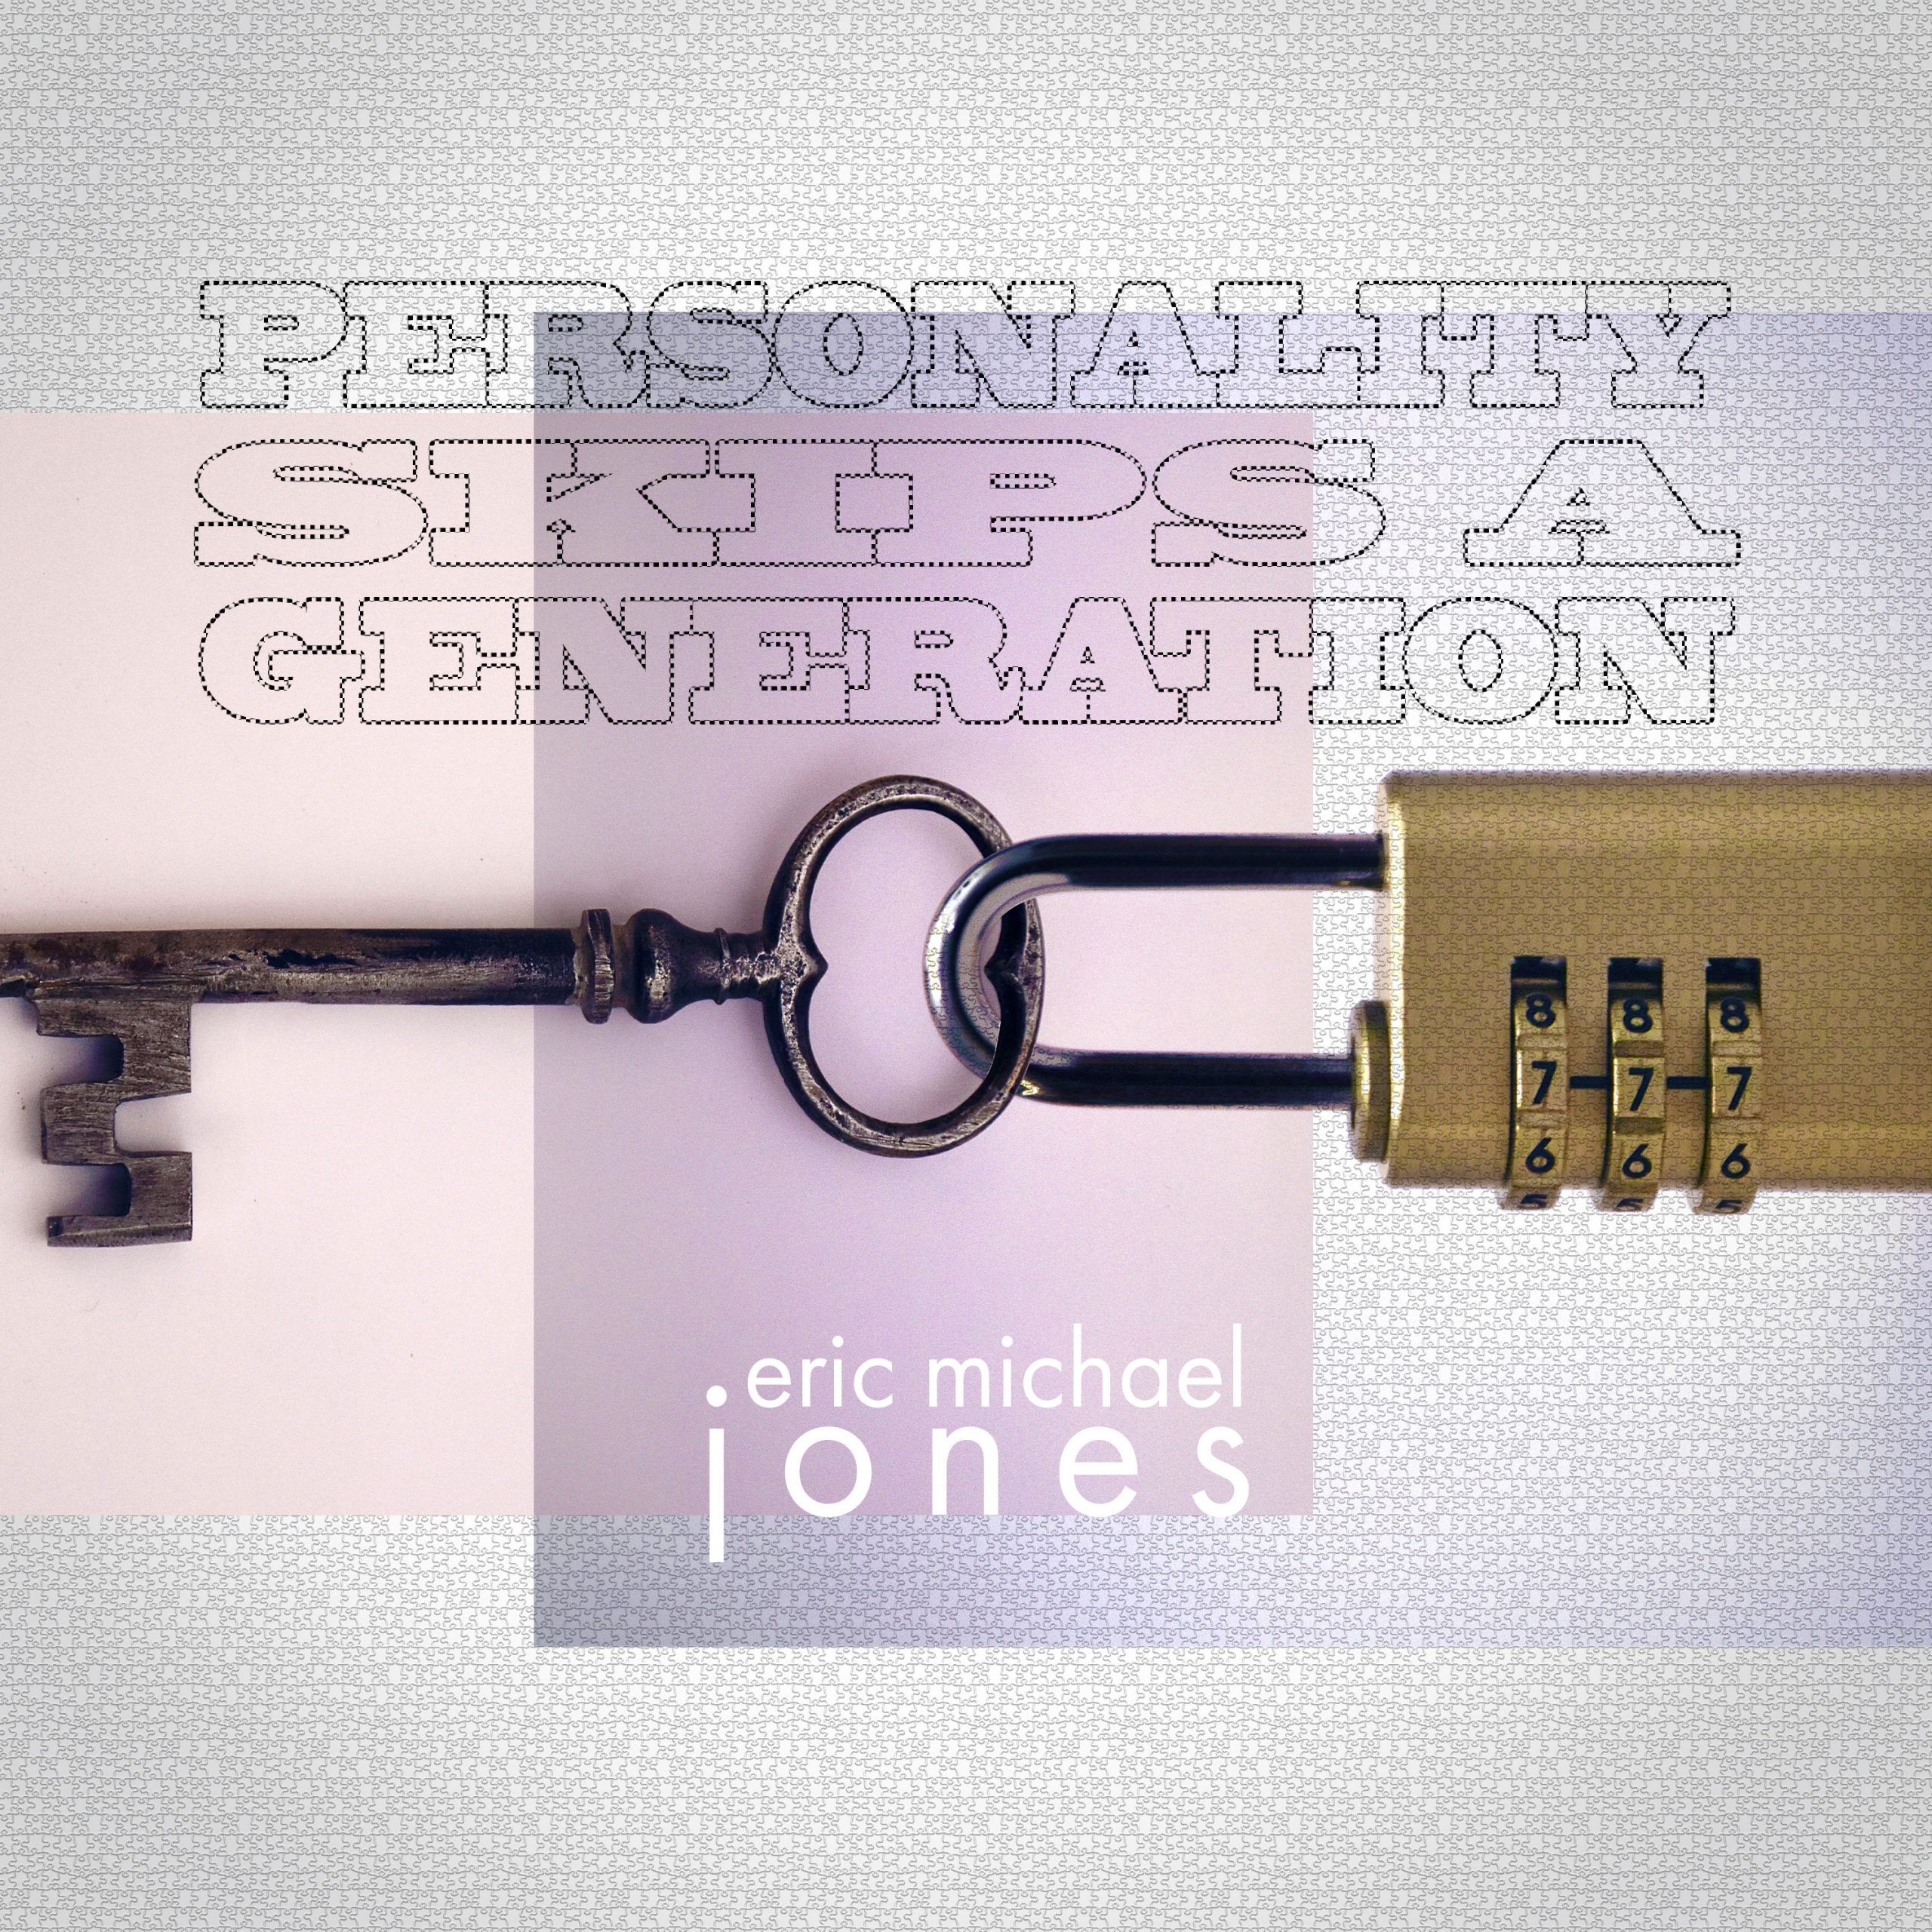 Cover art for the song Personality Skips A Generation shows a key attached to a padlock